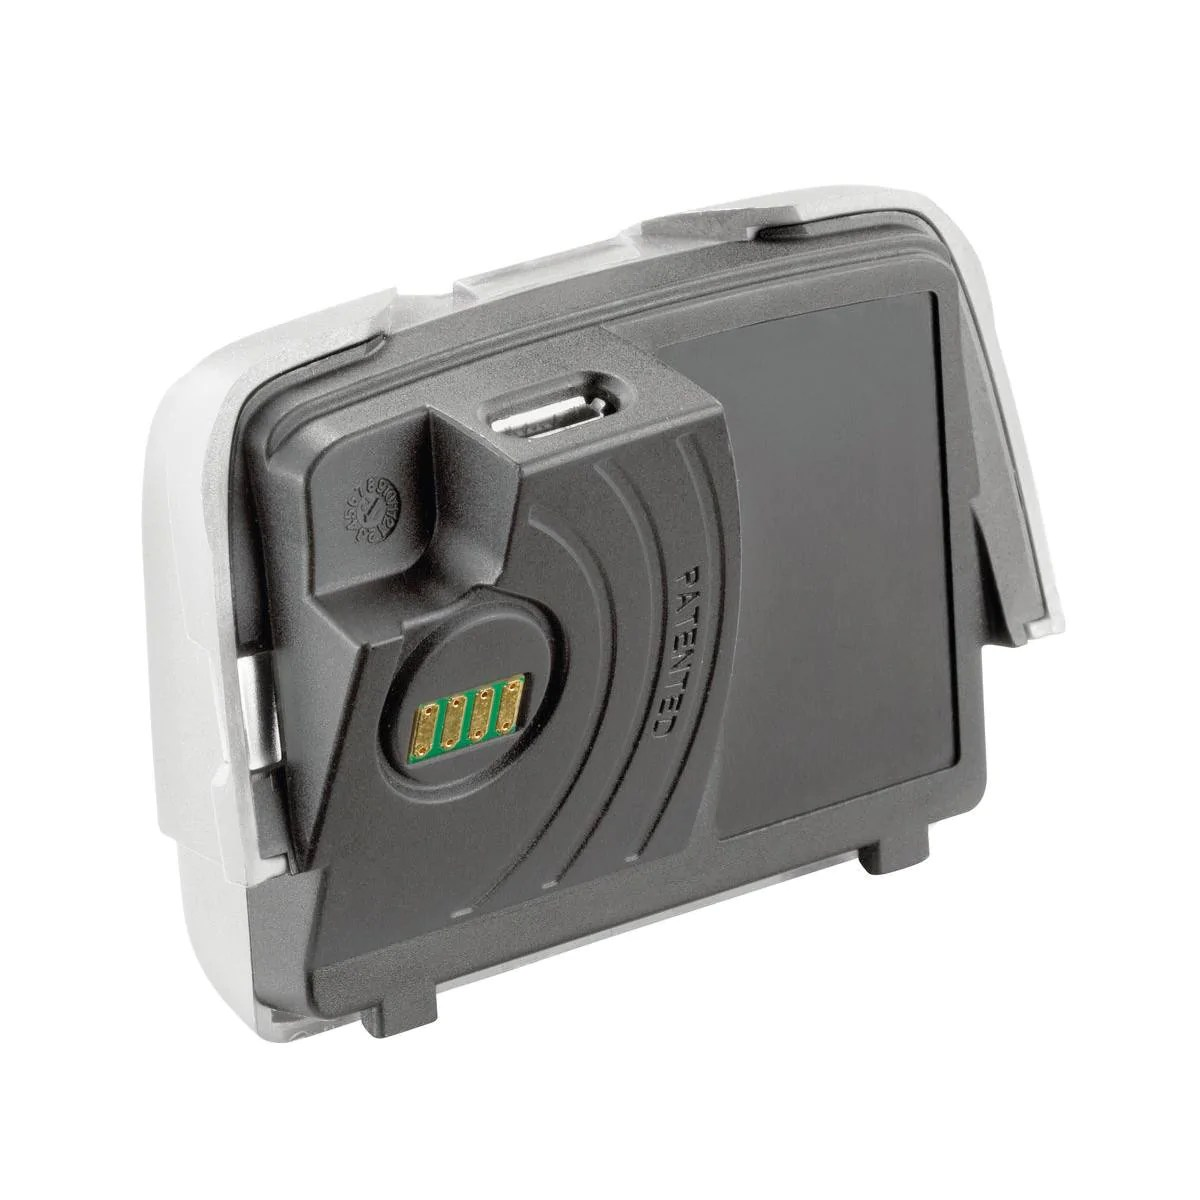 Accu Rechargeable Petzl Accu Reactik Rechargeable Battery Gotyourgear